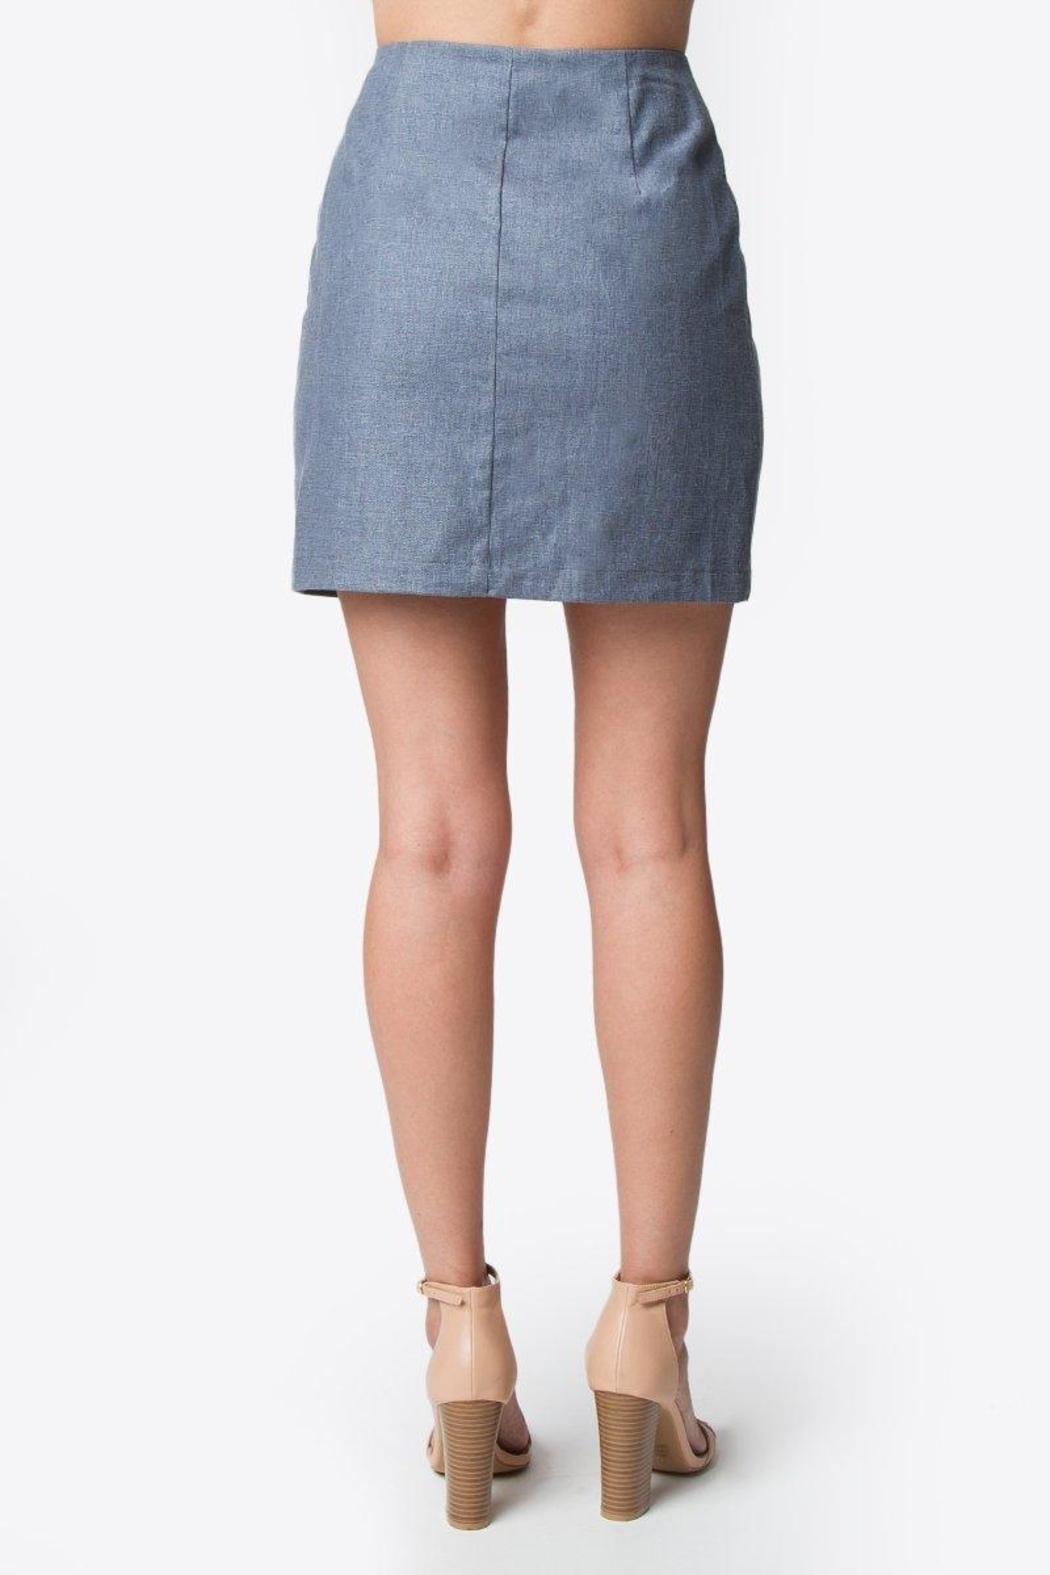 Sugar Lips Linen Mini Skirt - Back Cropped Image